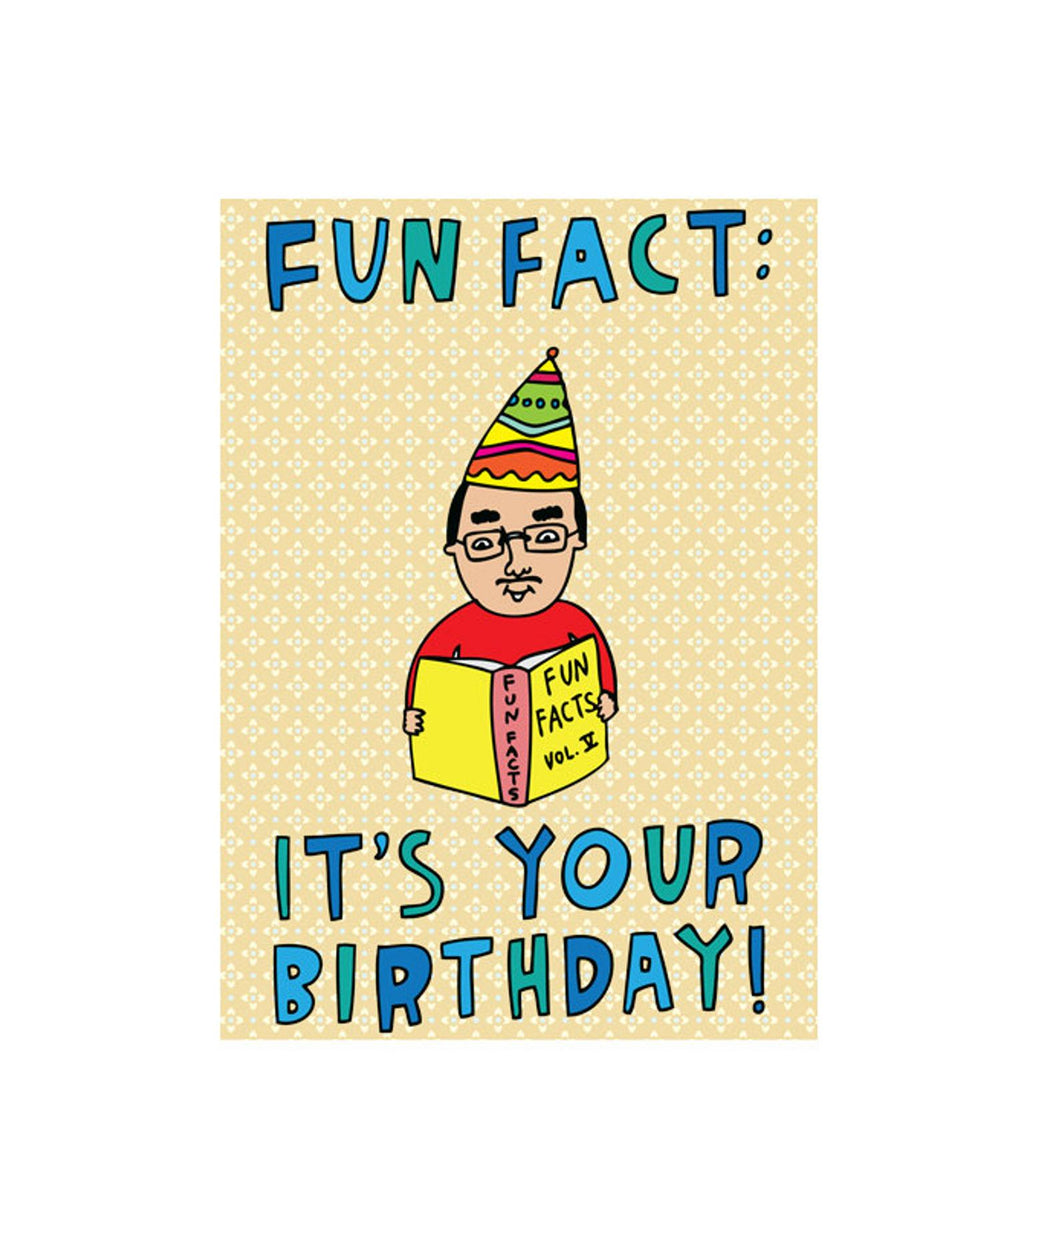 FUN FACT: IT'S YOUR BIRTHDAY | ABLE + GAME